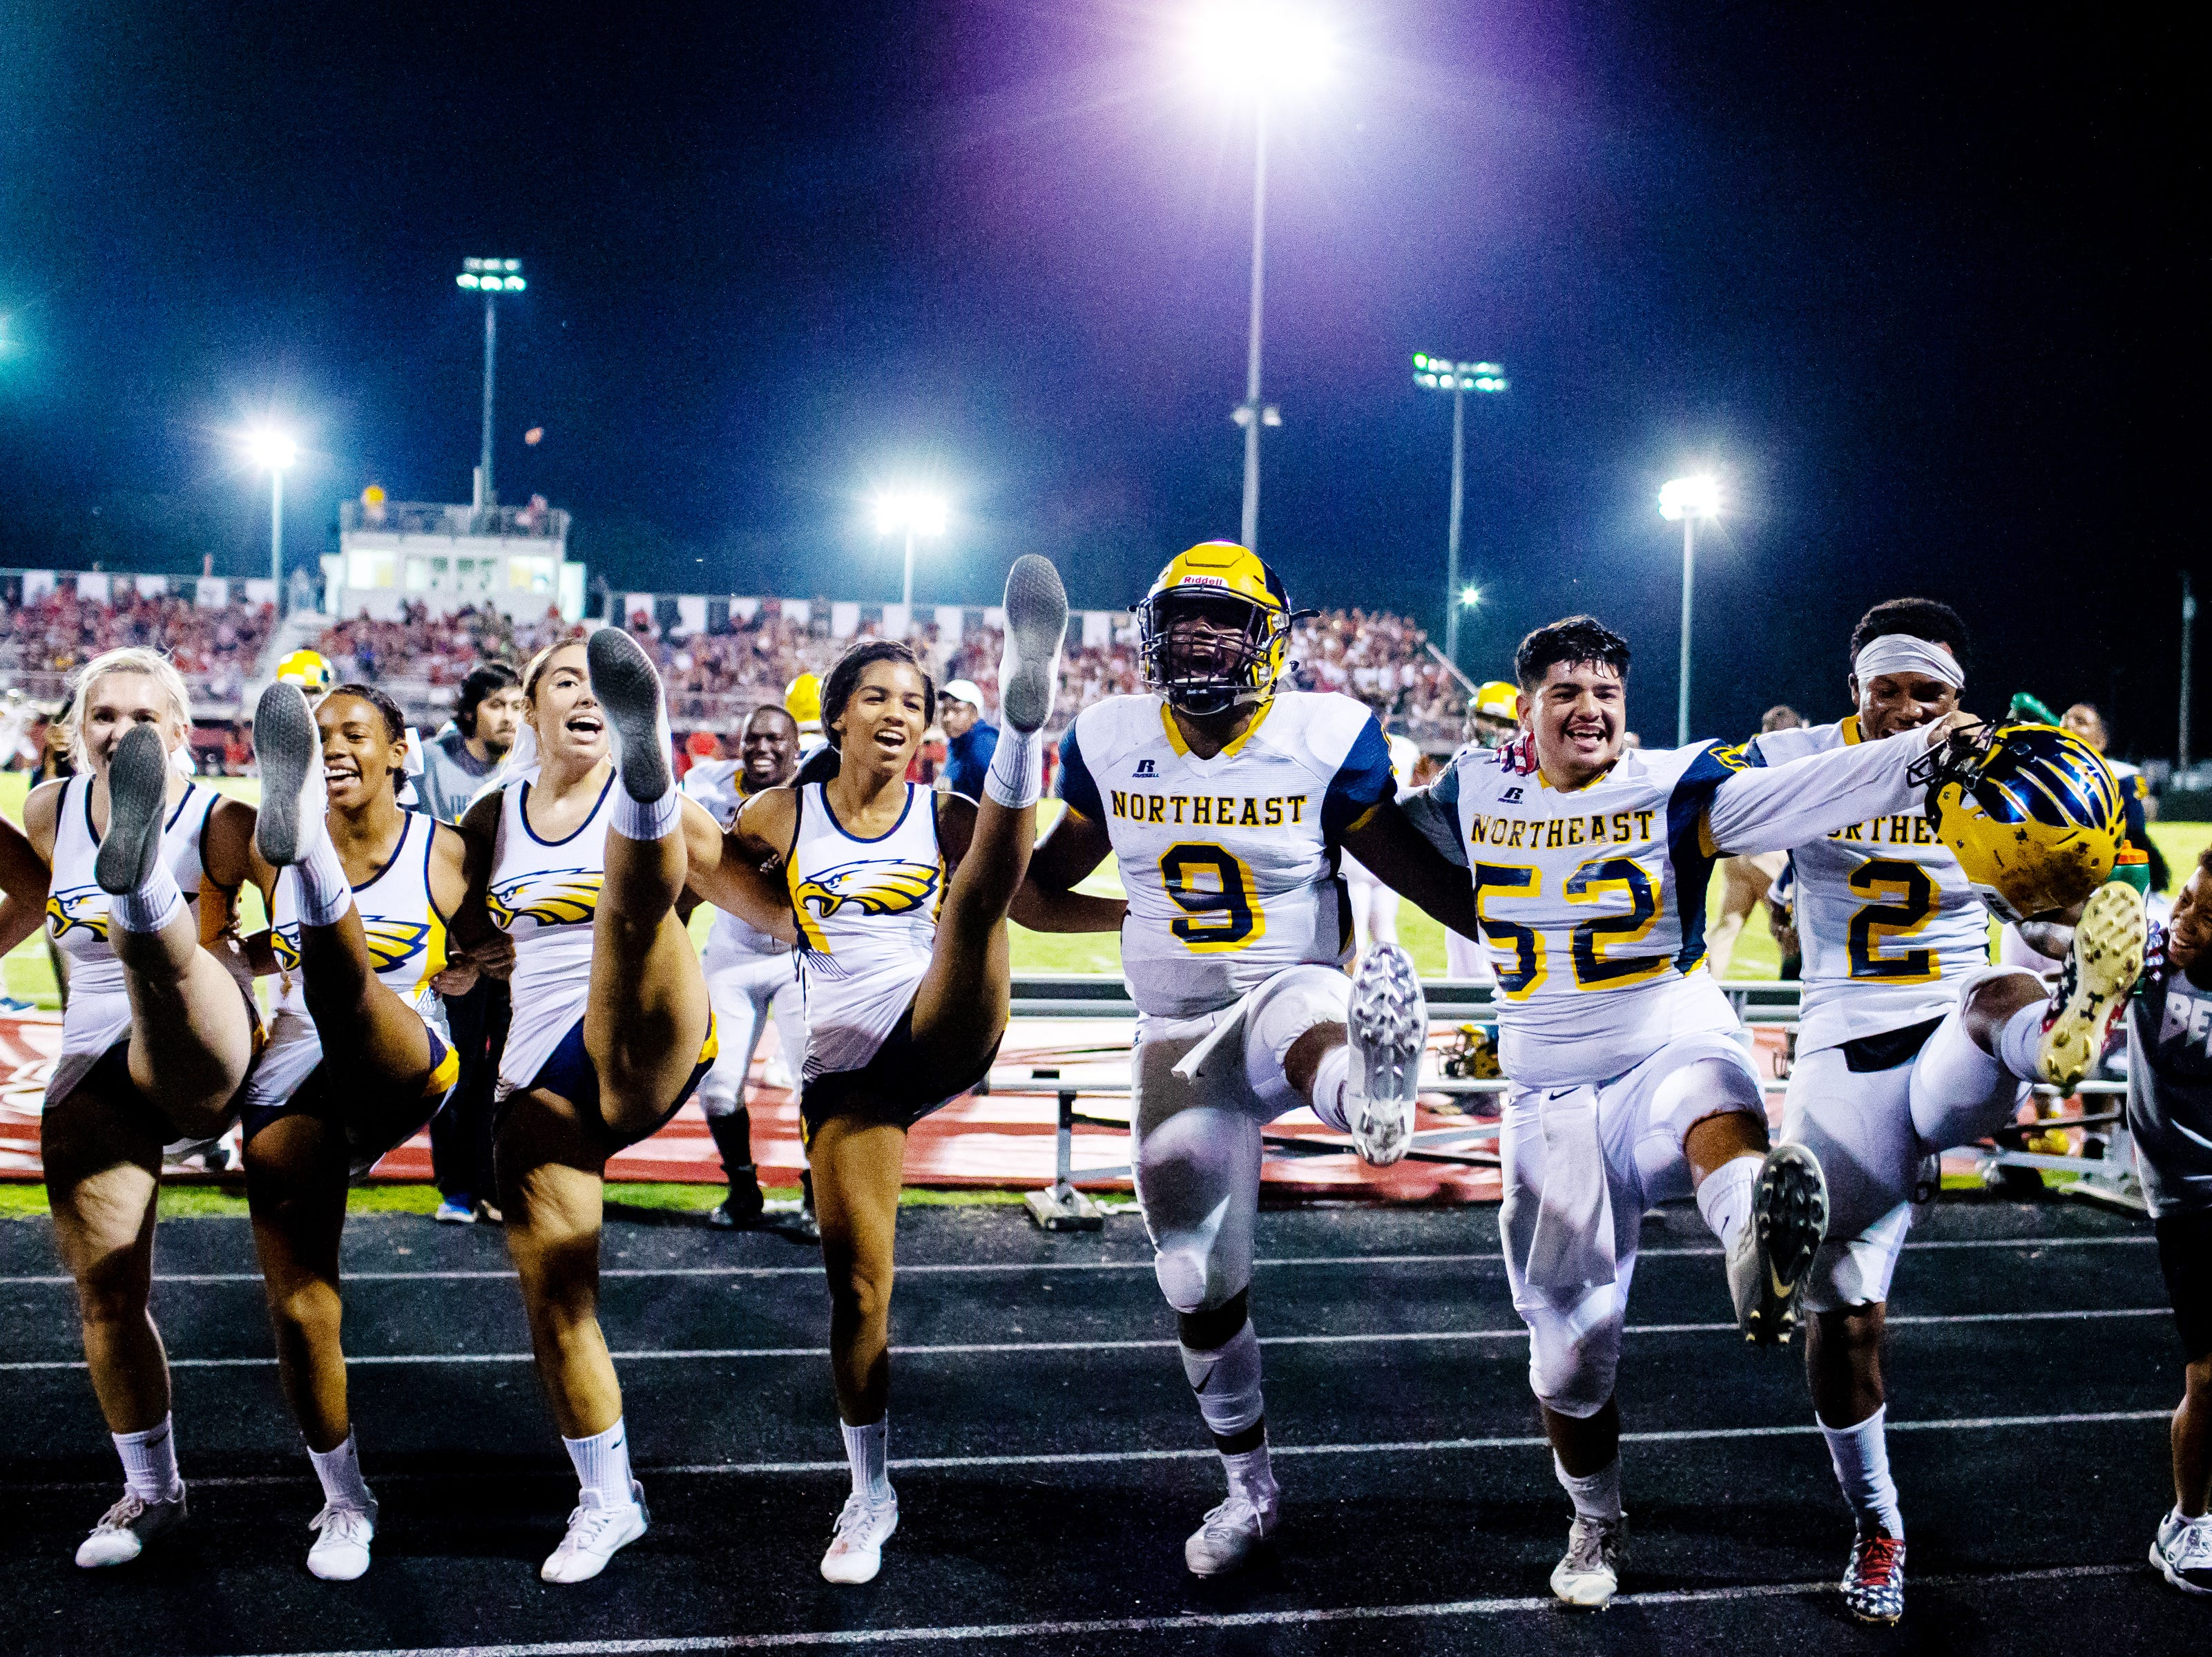 Northeast players join cheerleaders in the kick line after their touchdown during the second half at Rossview Friday, Sept. 7, 2018, in Clarksville, Tenn.